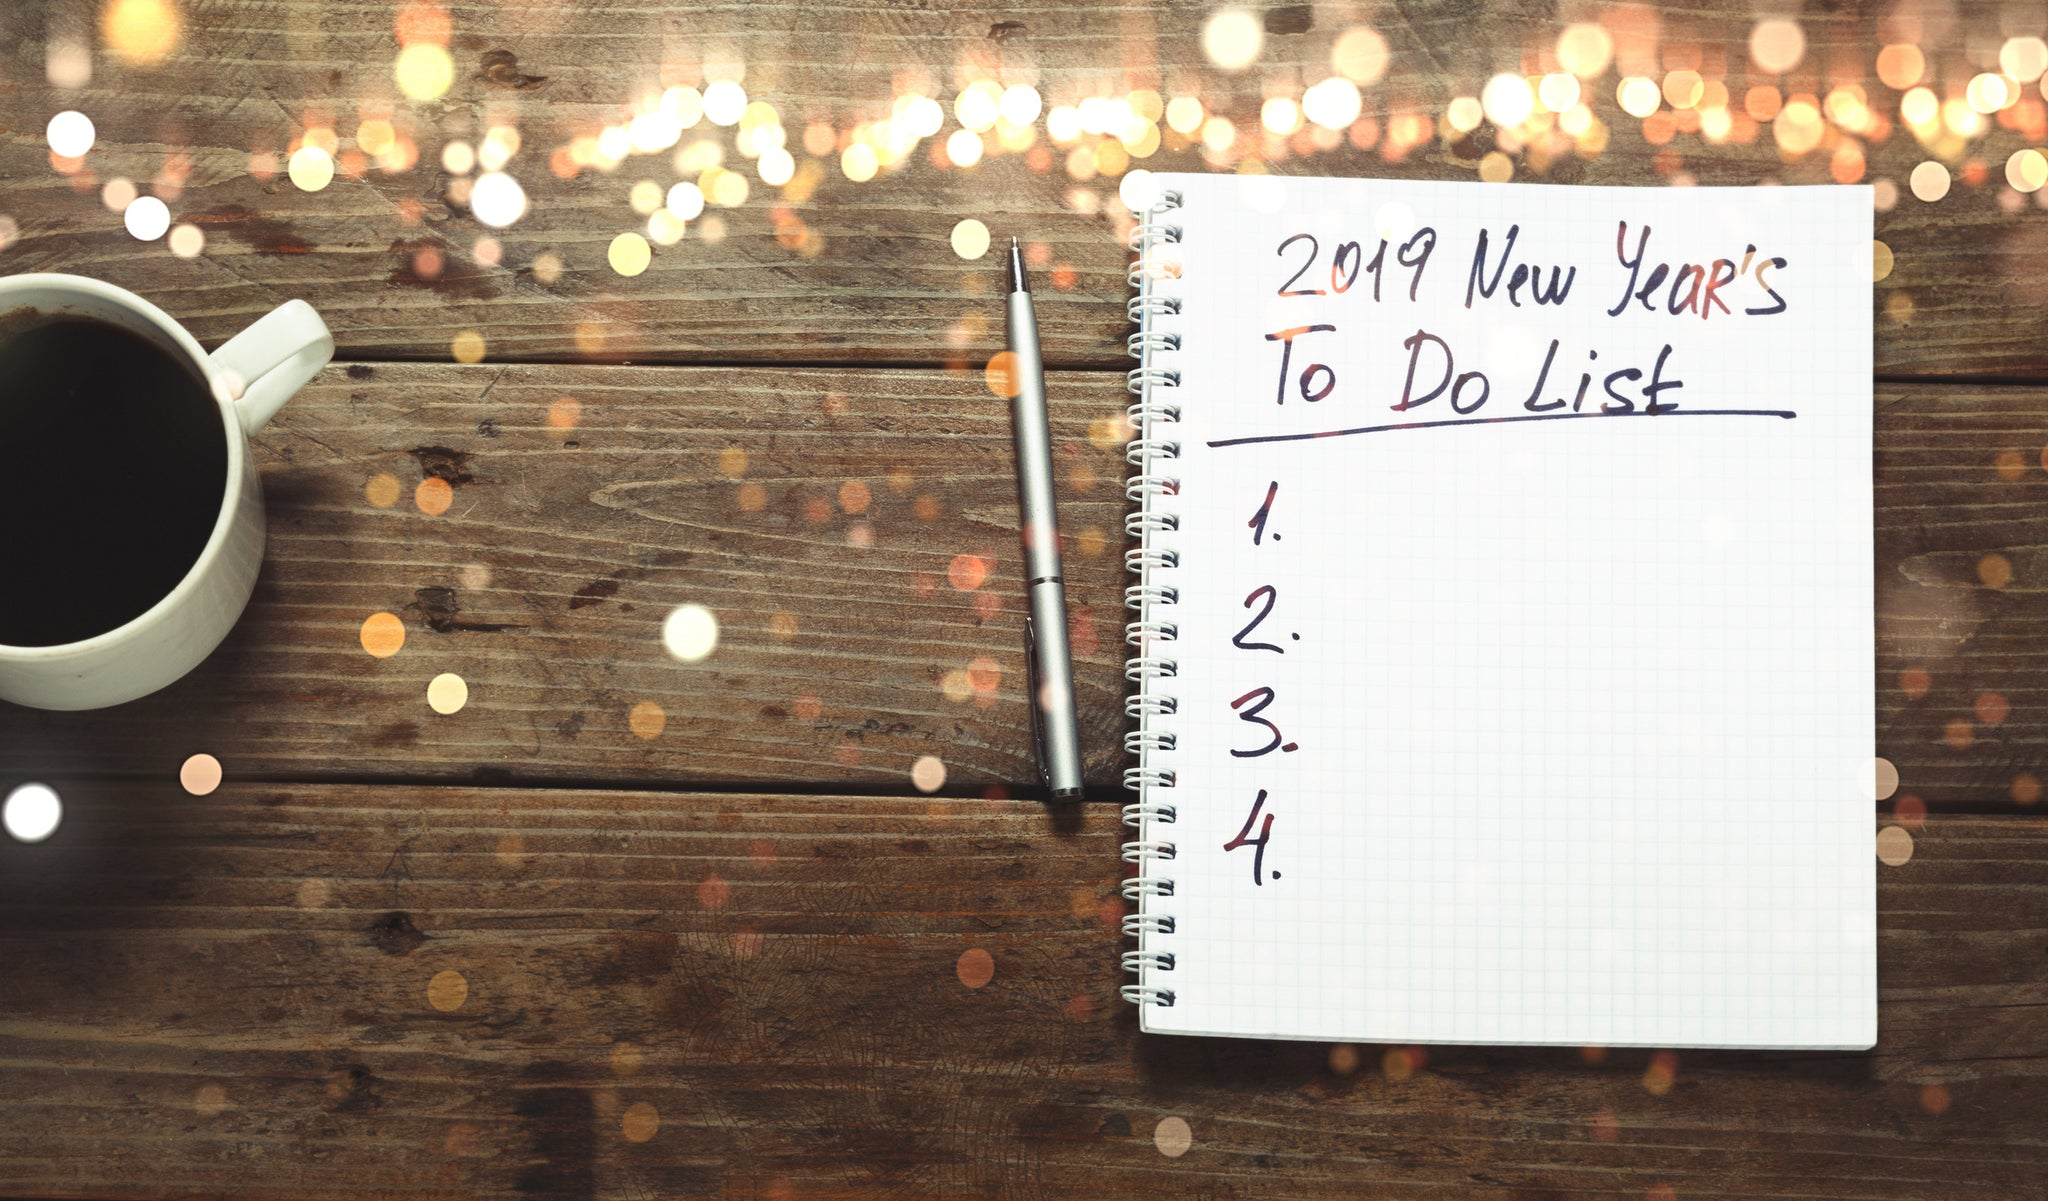 Preparing Your New Year's Resolutions? Here are 3 Ways to Make Sure you Reach Your Goals